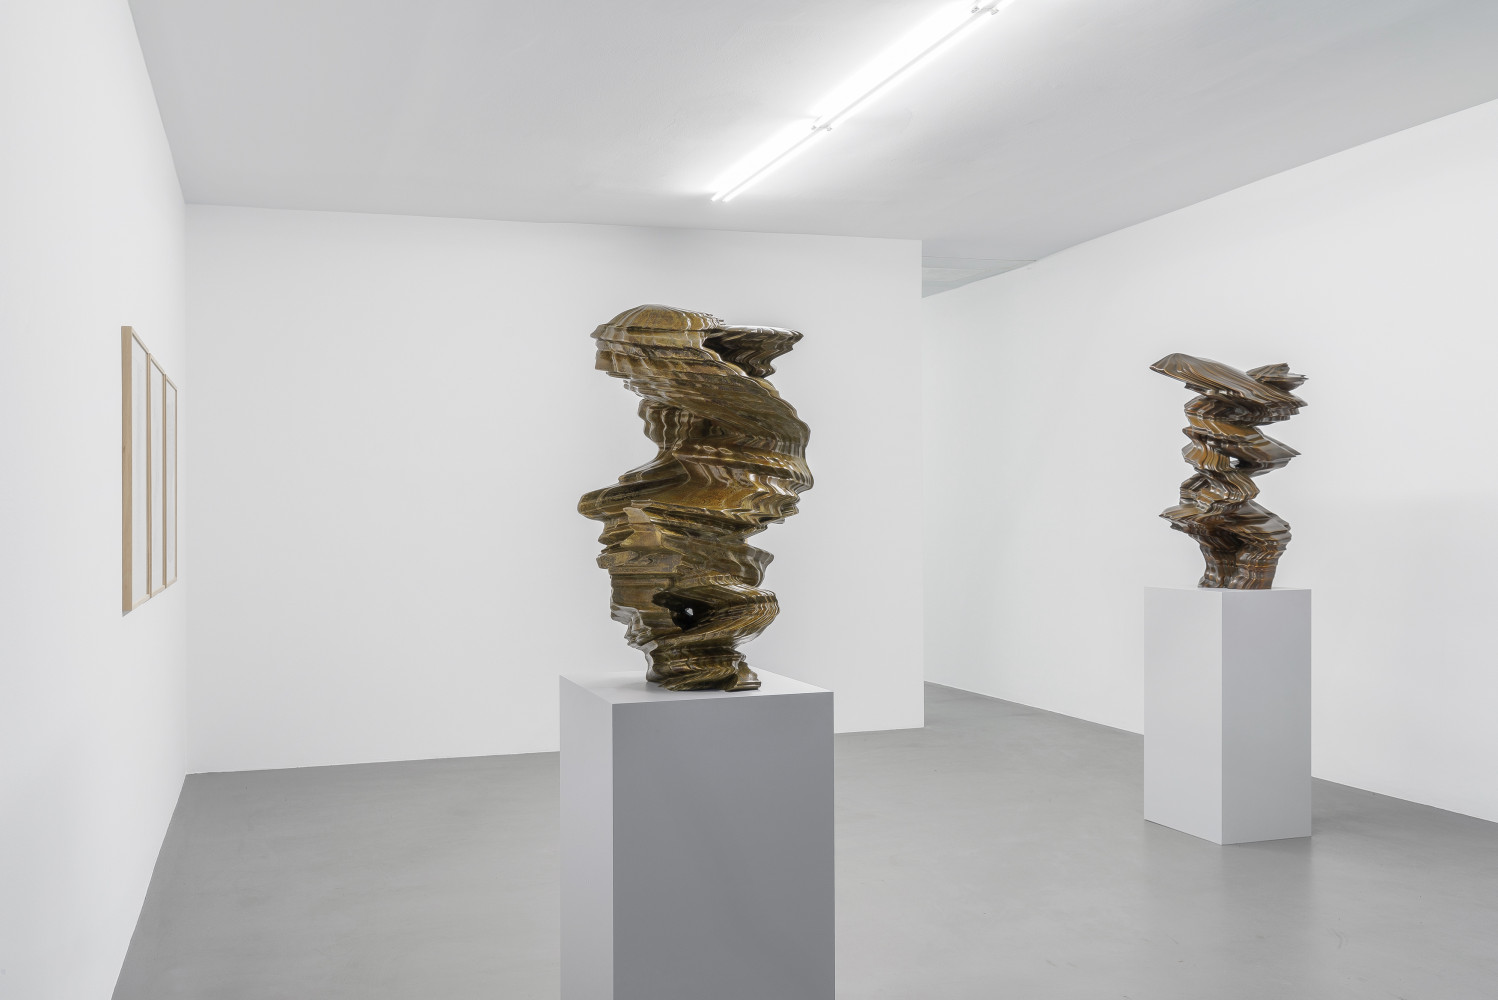 Tony Cragg, Installation view, Buchmann Box